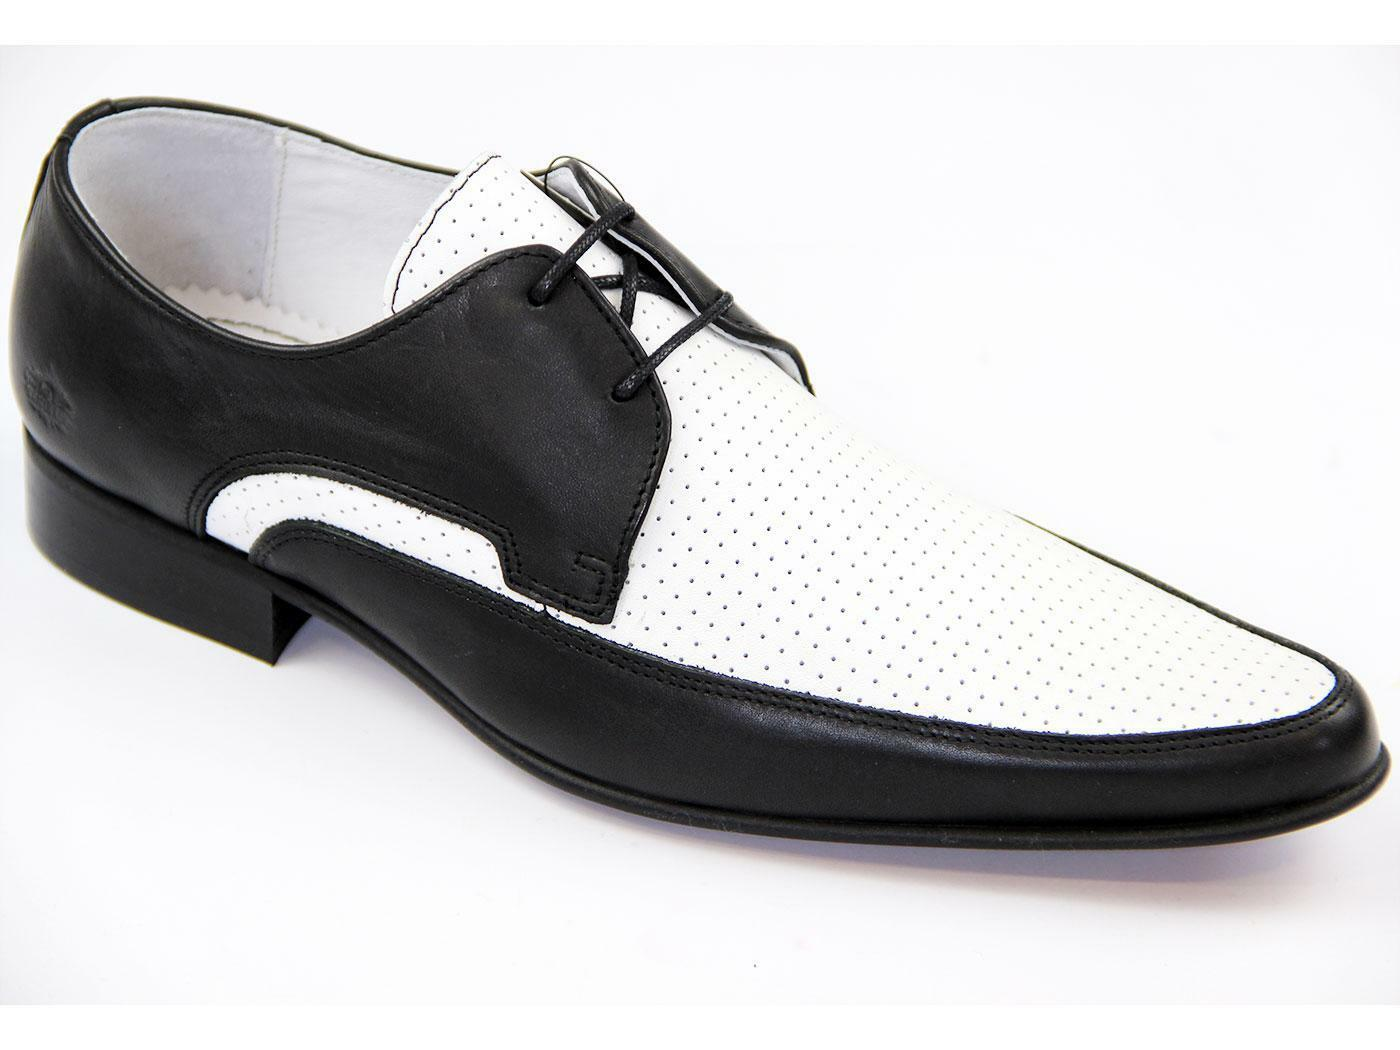 Ikon Jam  Ik3414  Mens Leather Pointed Shoes Black White Retro Mod Rock 60S